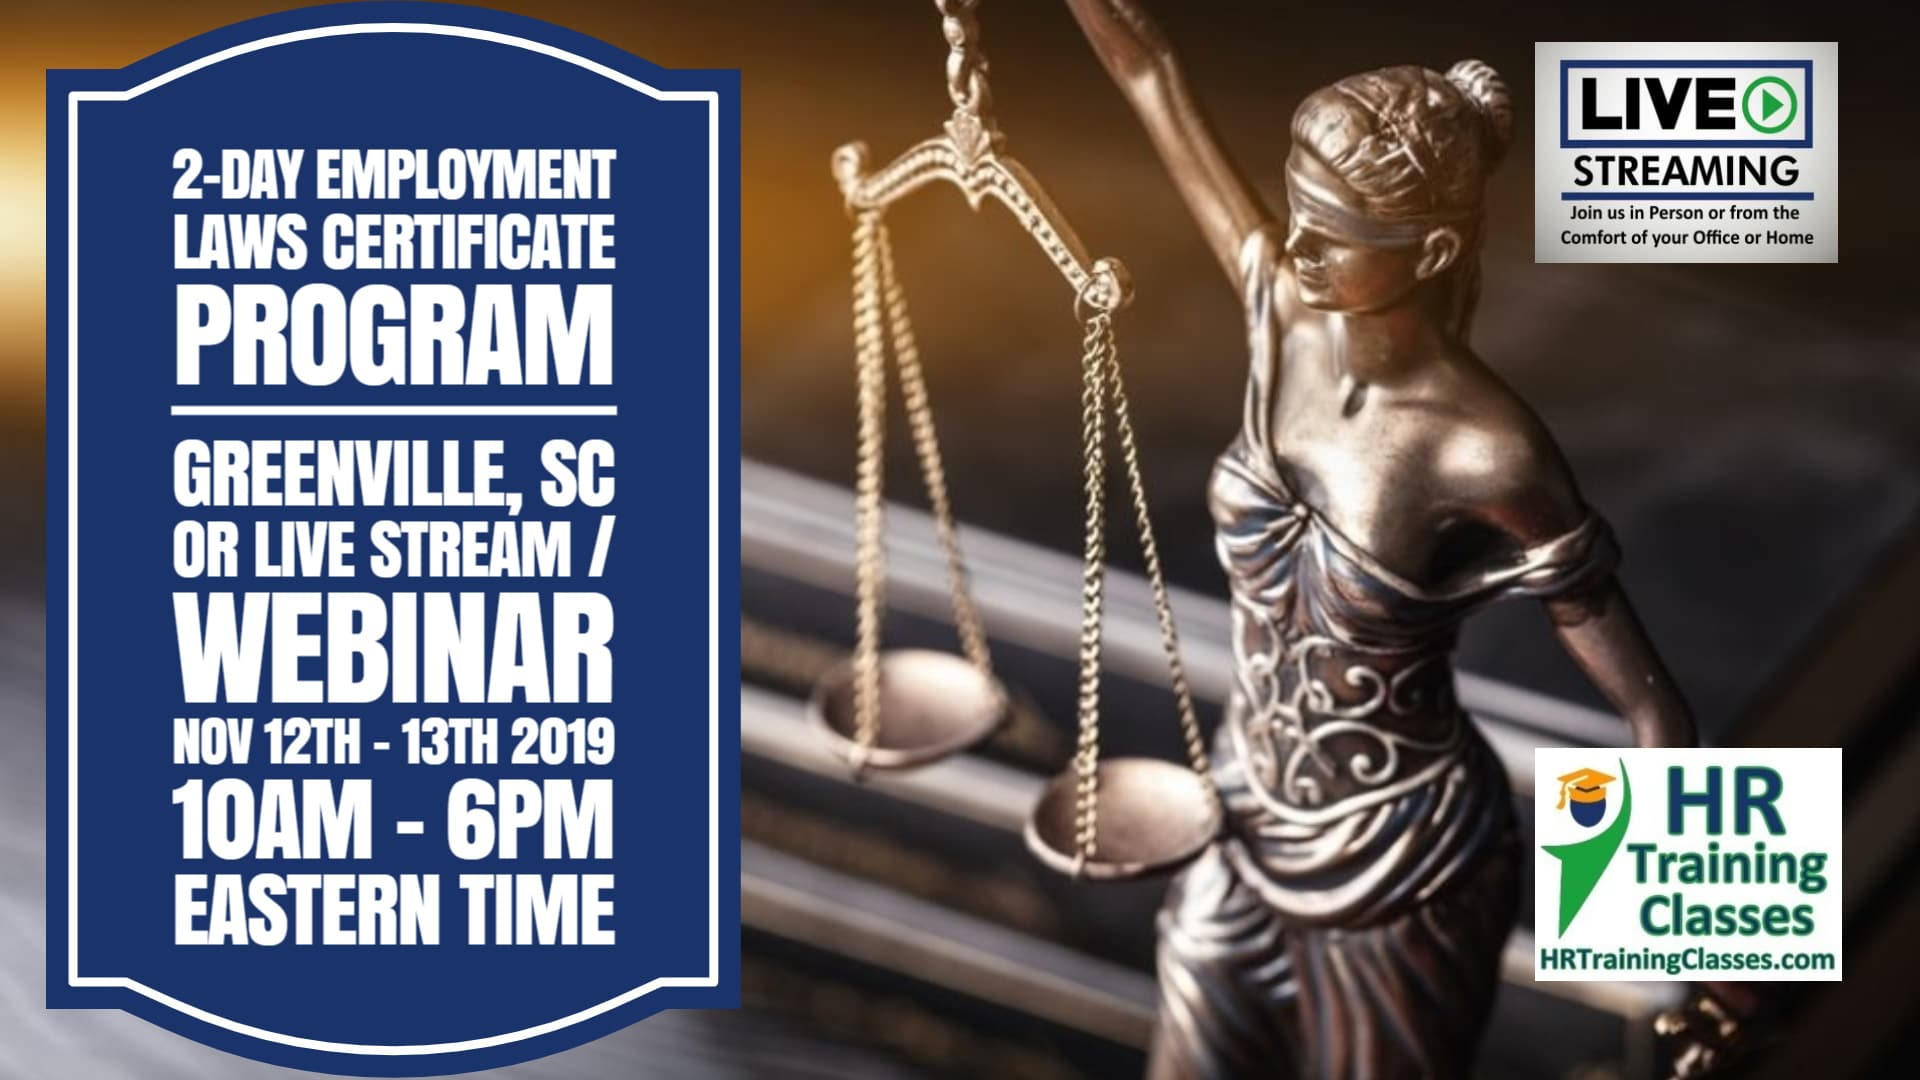 2-Day Employment Laws Certificate Program for HR Professionals, Managers and Supervisors (Starting 11/12/19)